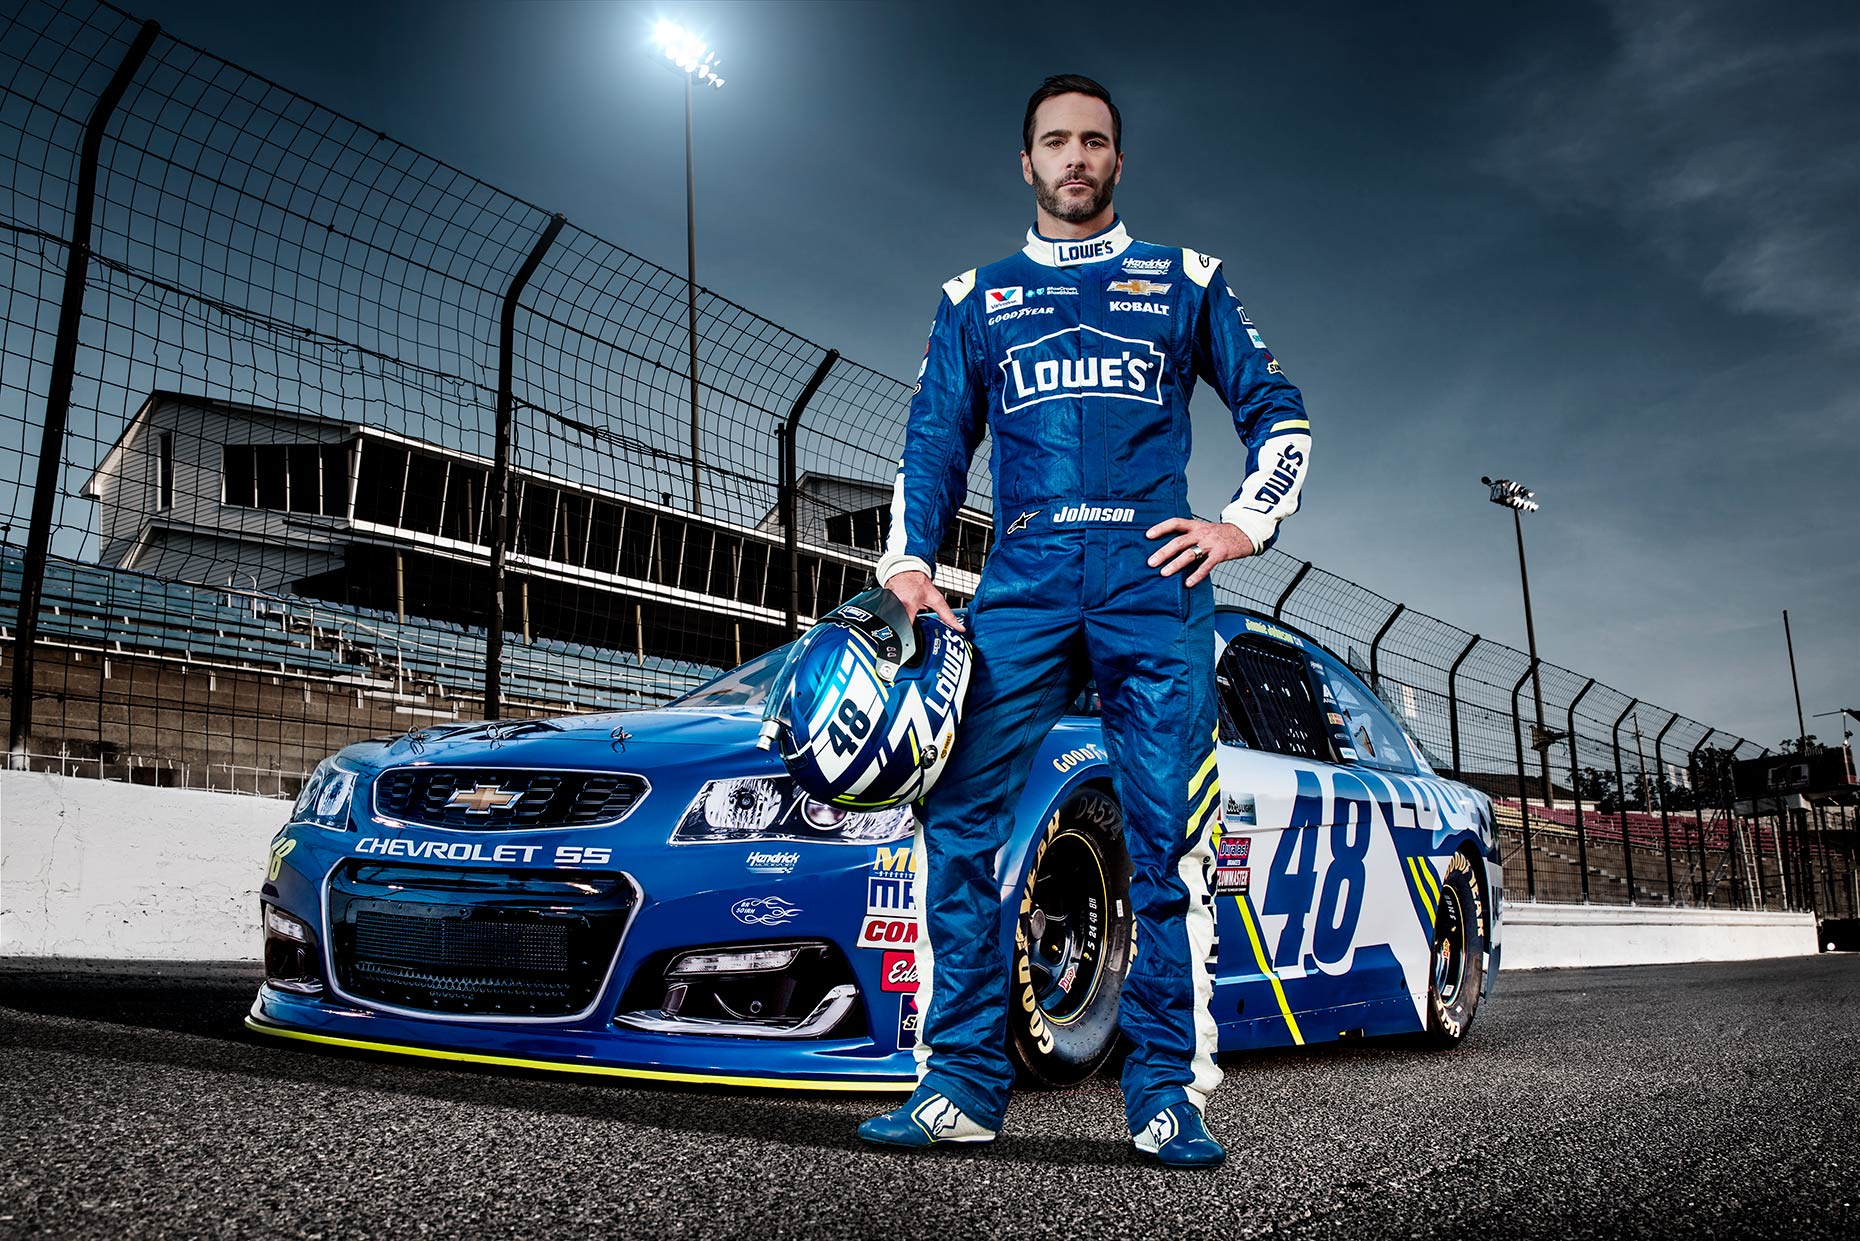 Lowes-Racing-Jimmie